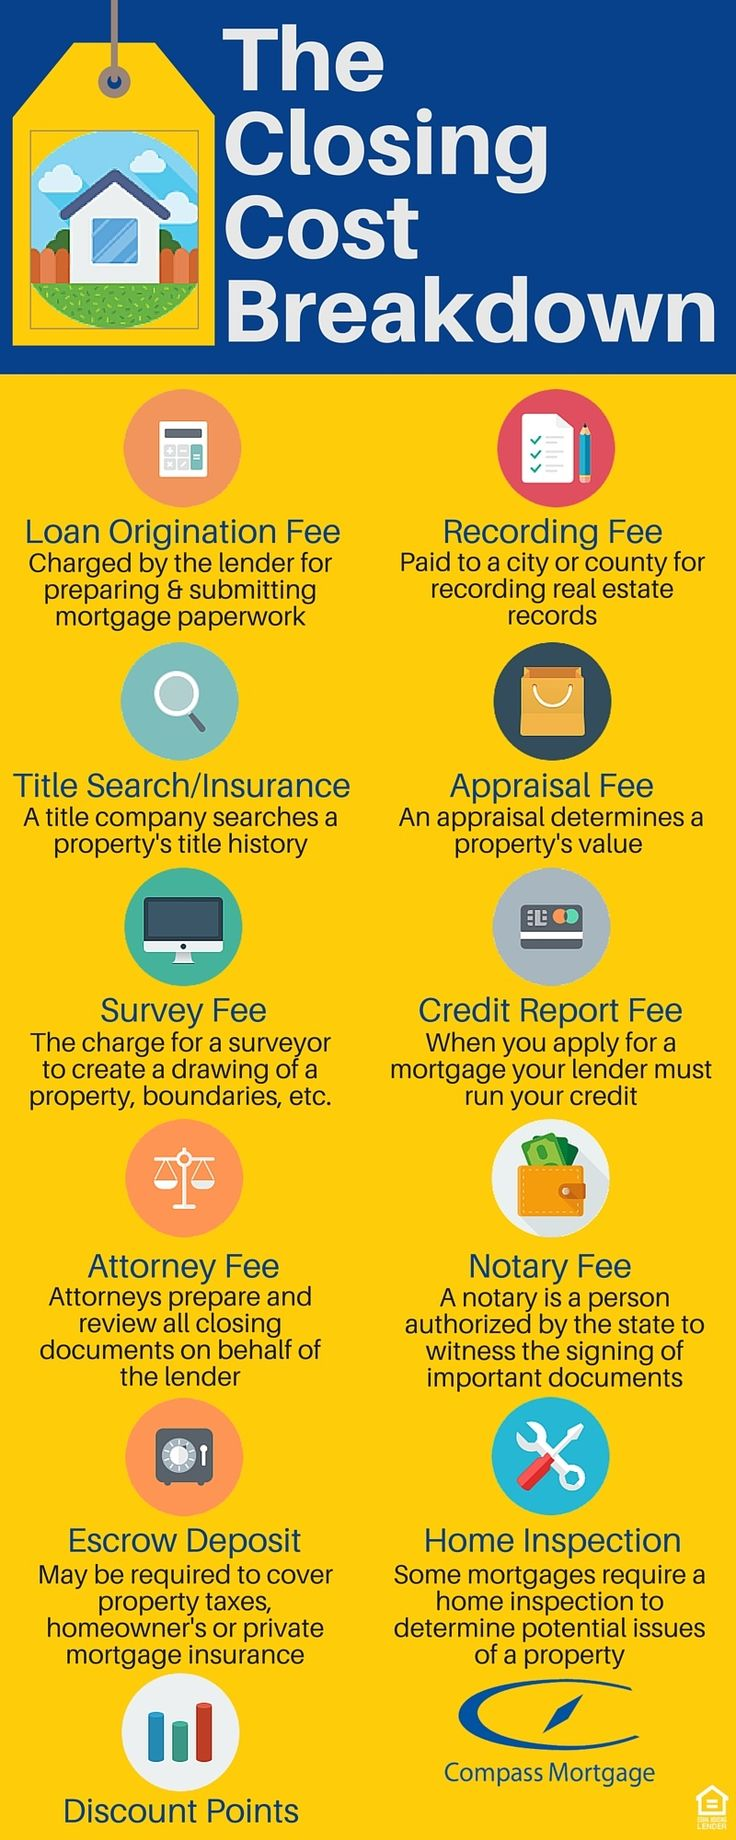 Preparing to Buy a Home: The Closing Cost Breakdown